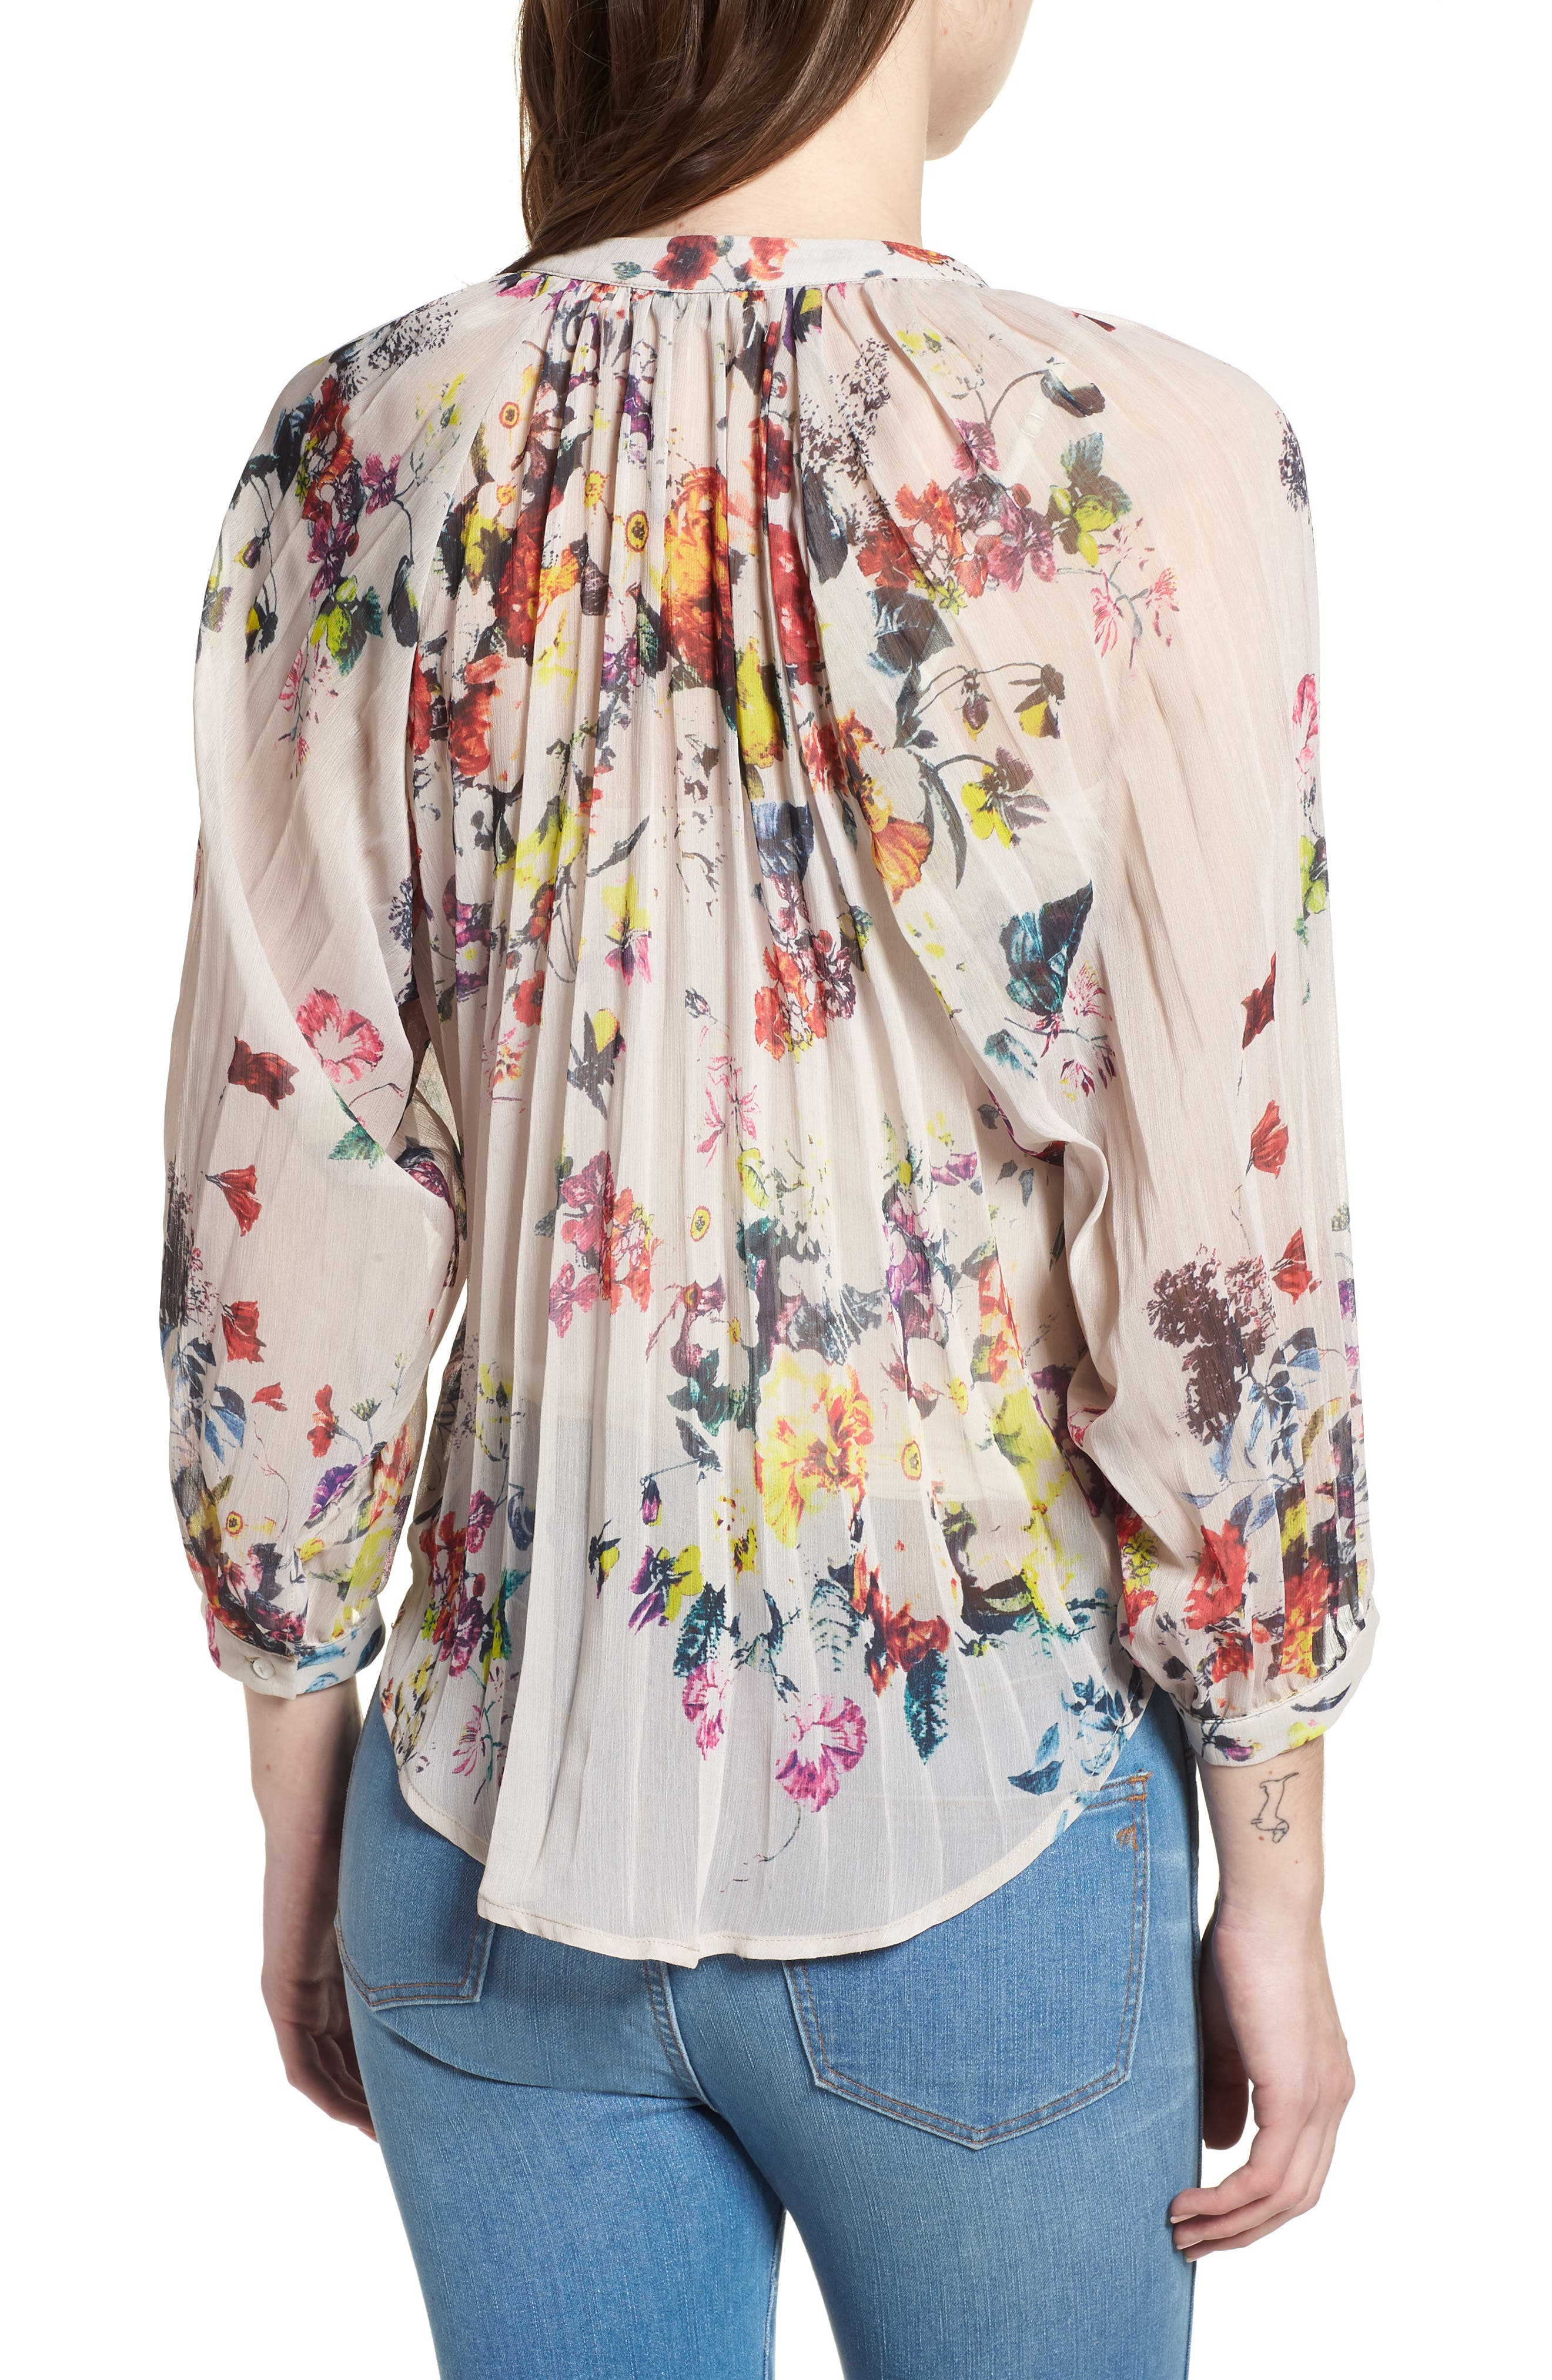 Bishop + Young Floral Pleated Top,                             Alternate thumbnail 2, color,                             Romance Print